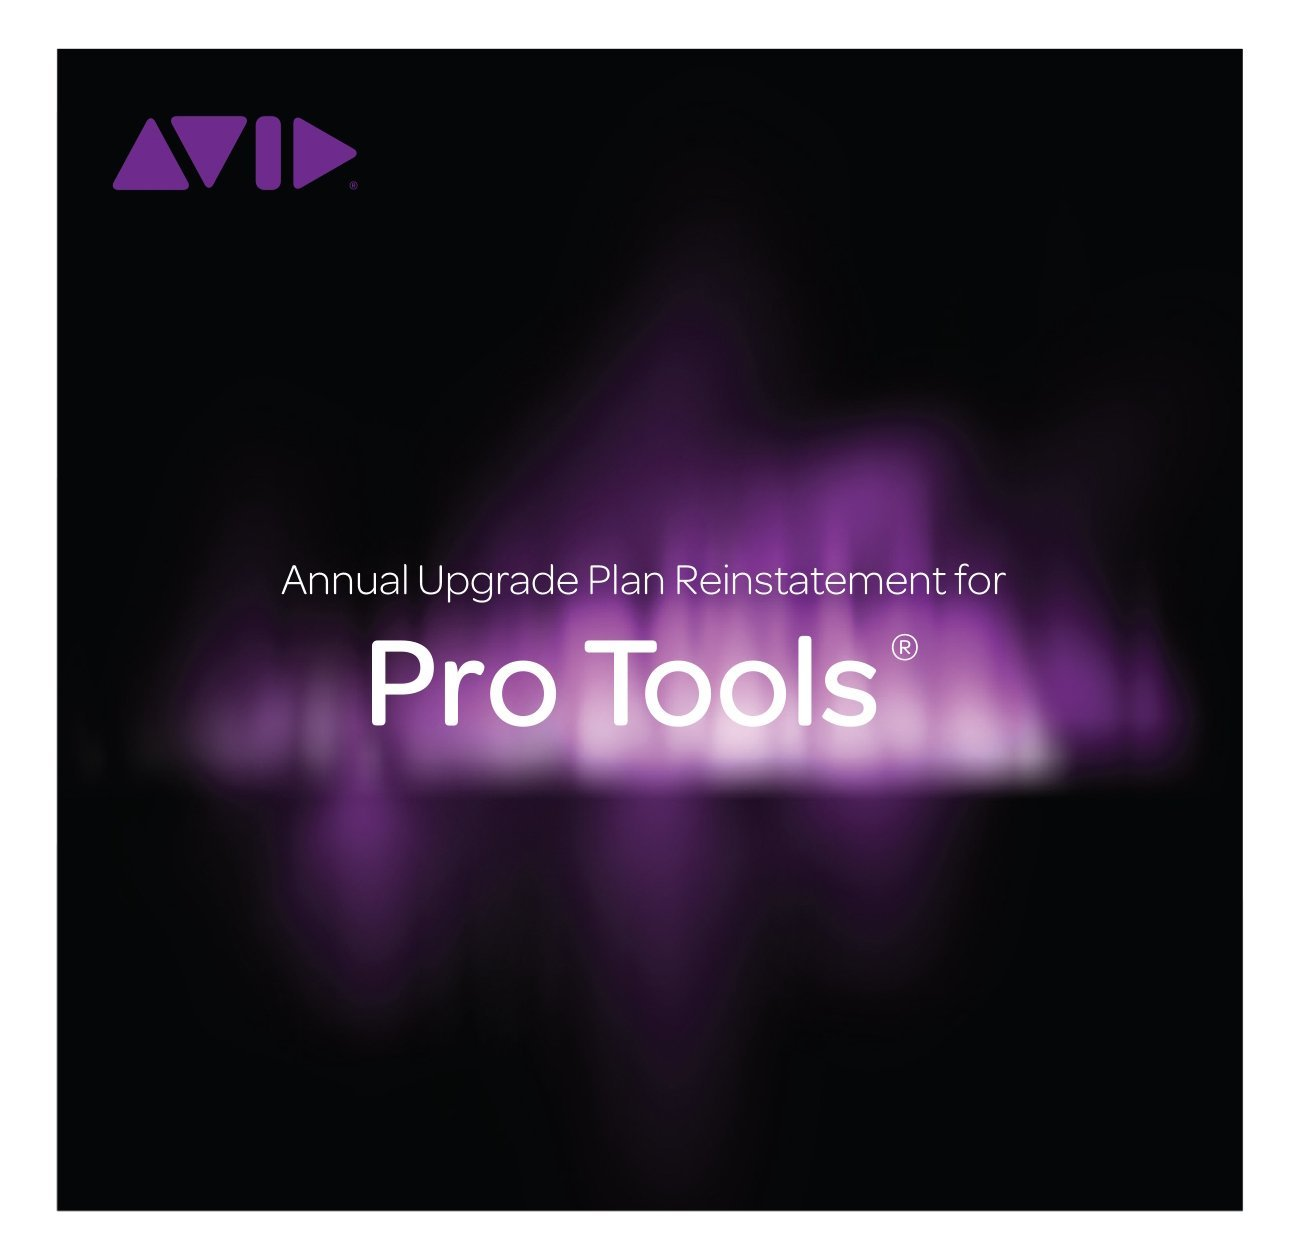 Annual Upgrade & Support Plan Reinstatement for Pro Tools